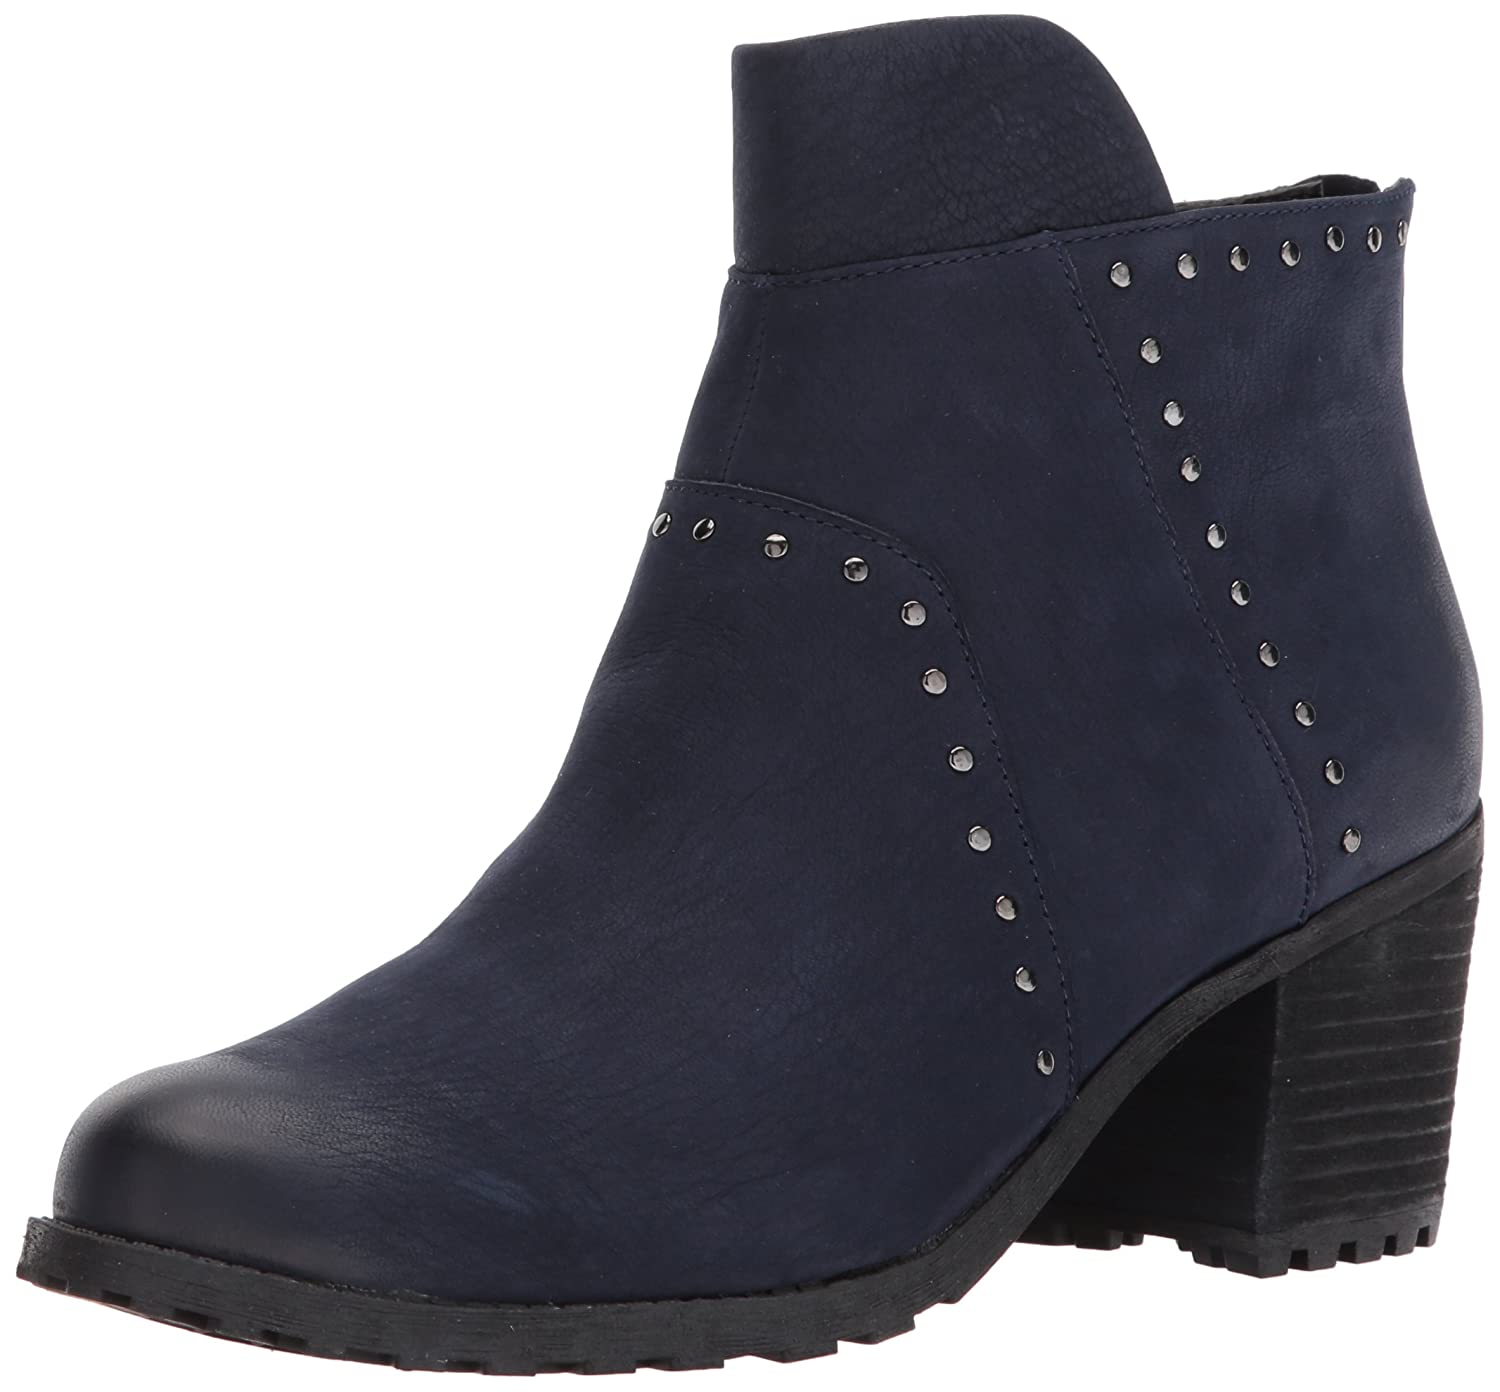 Aerosoles Women's Incentive Ankle Boot B073HC9VJC 9 B(M) US|Navy Nubuck